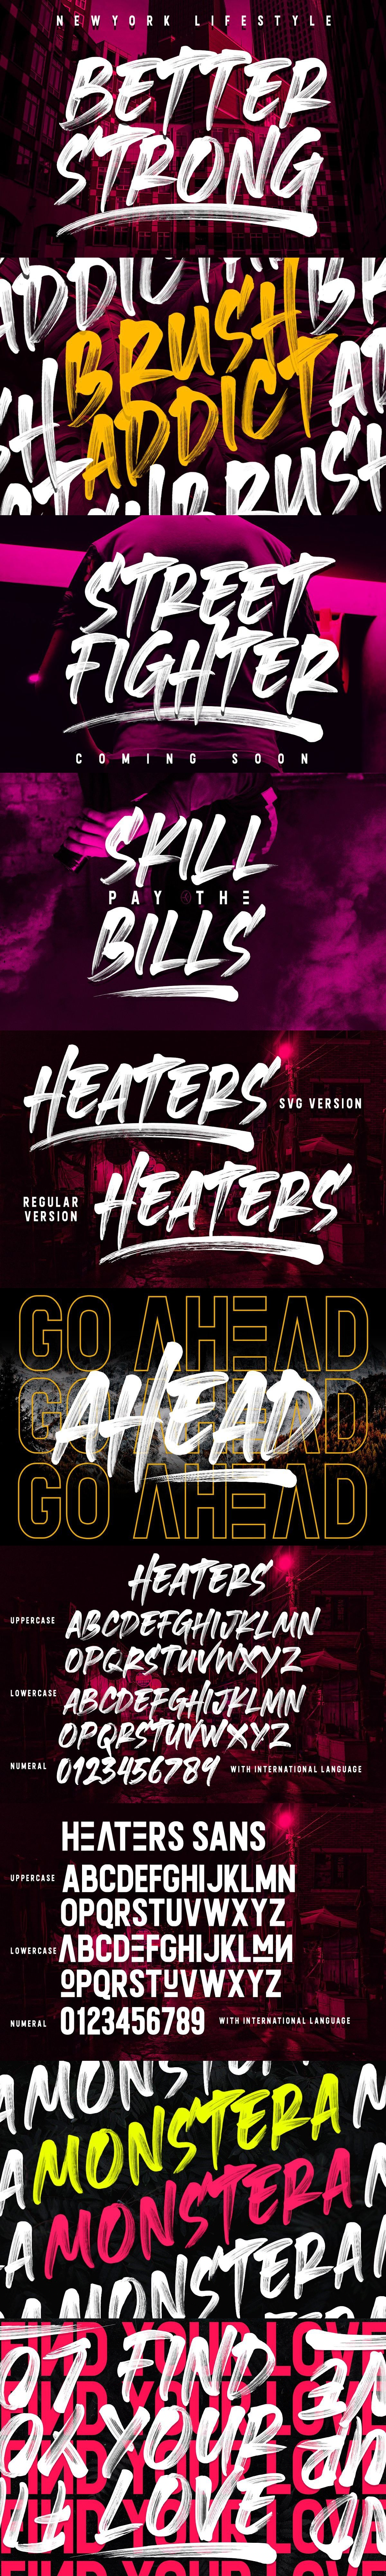 Heaters SVG Font Collections Web graphic design